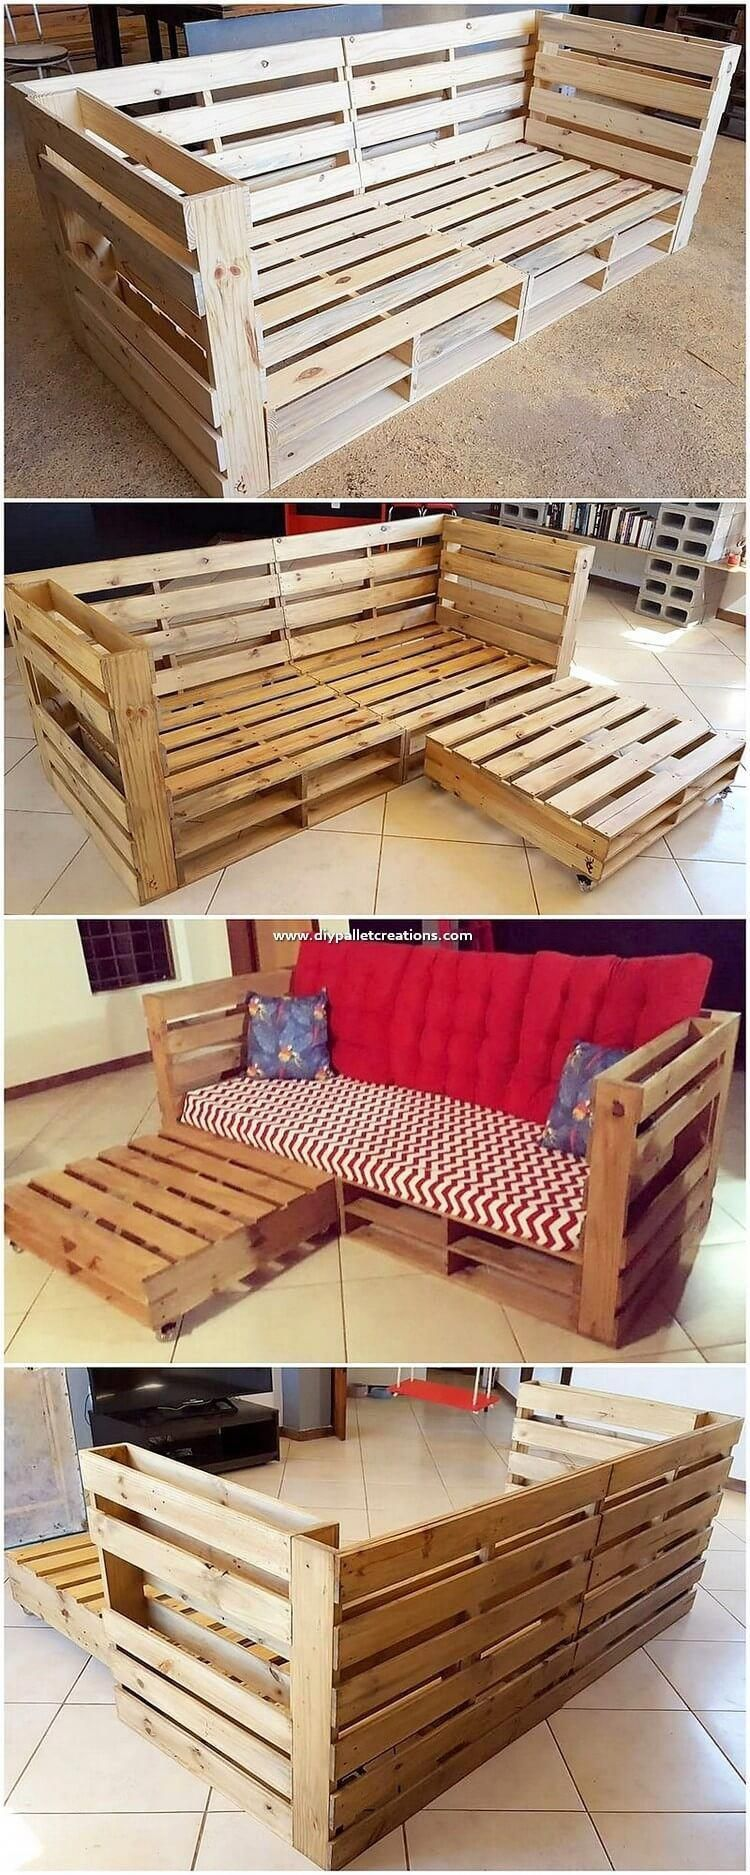 Do it yourself pallet furnishings inspiring ideas and ways